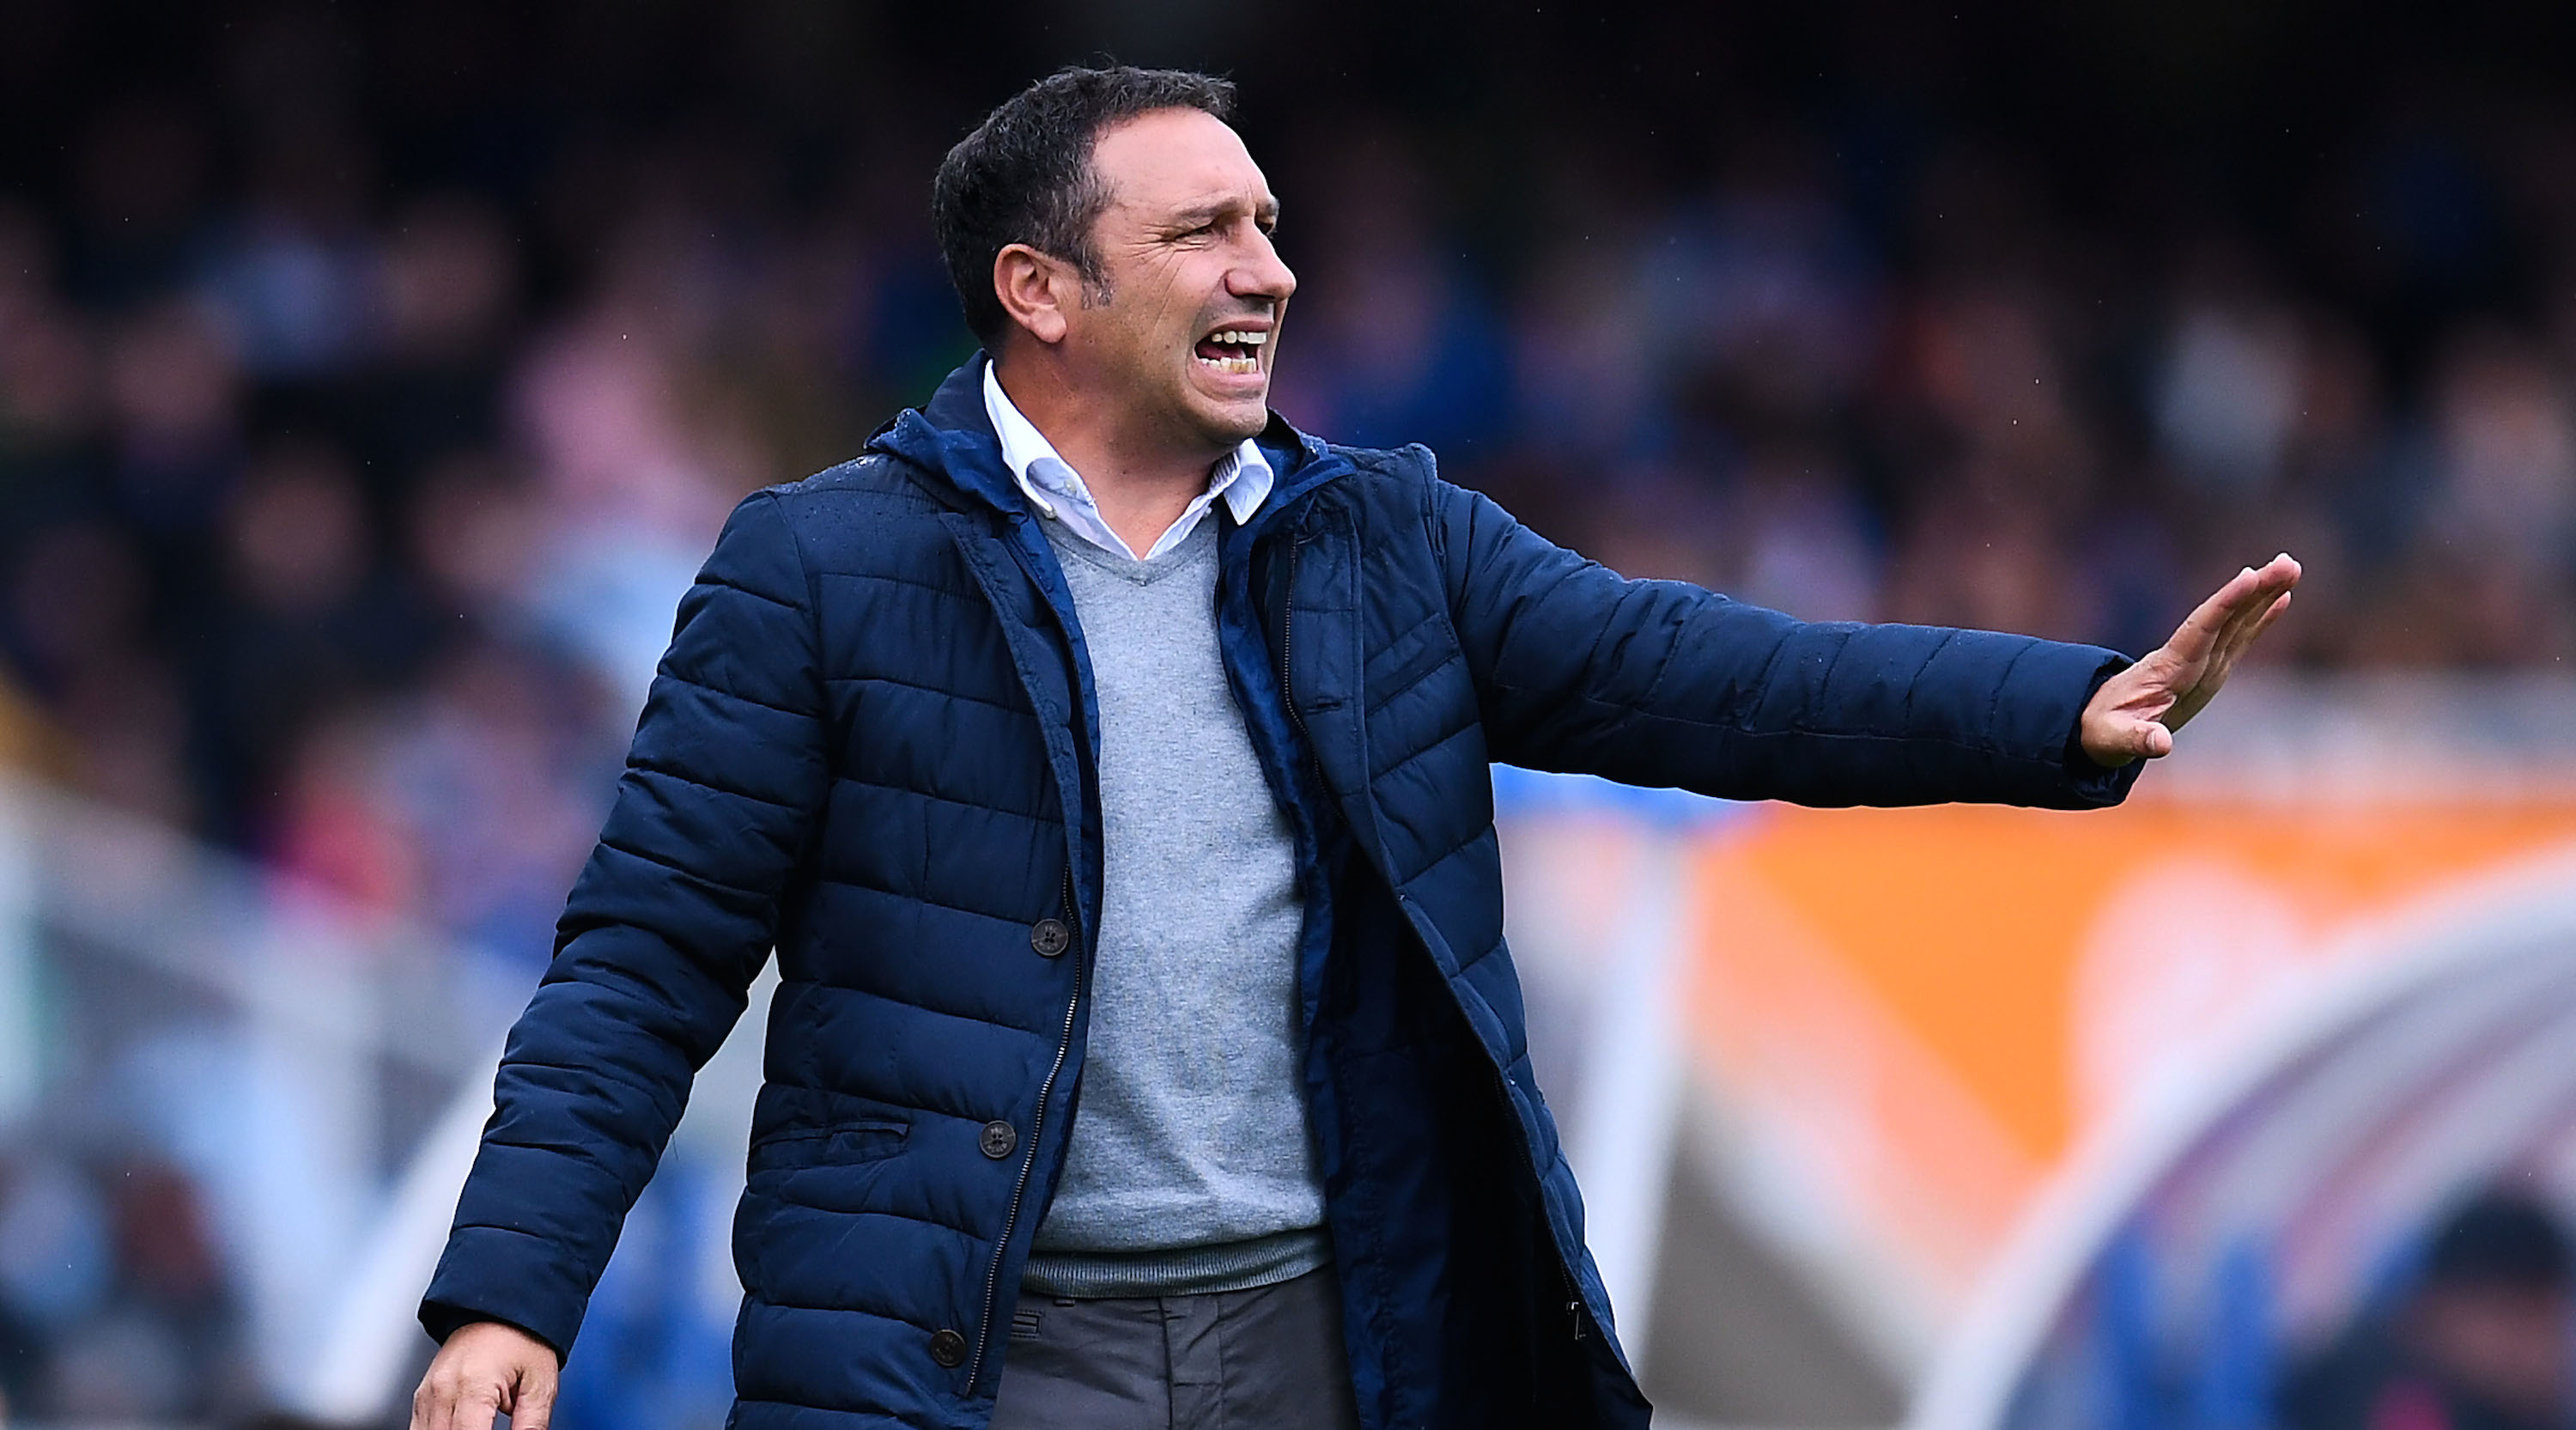 SAN SEBASTIAN, SPAIN - NOVEMBER 05: Head coach Eusebio Sacristan of Real Sociedad de Futbol reacts during the La Liga match between Real Sociedad de Futbol and Atletico de Madrid at Anoeta stadium on November 5, 2016 in San Sebastian, Spain. (Photo by David Ramos/Getty Images)